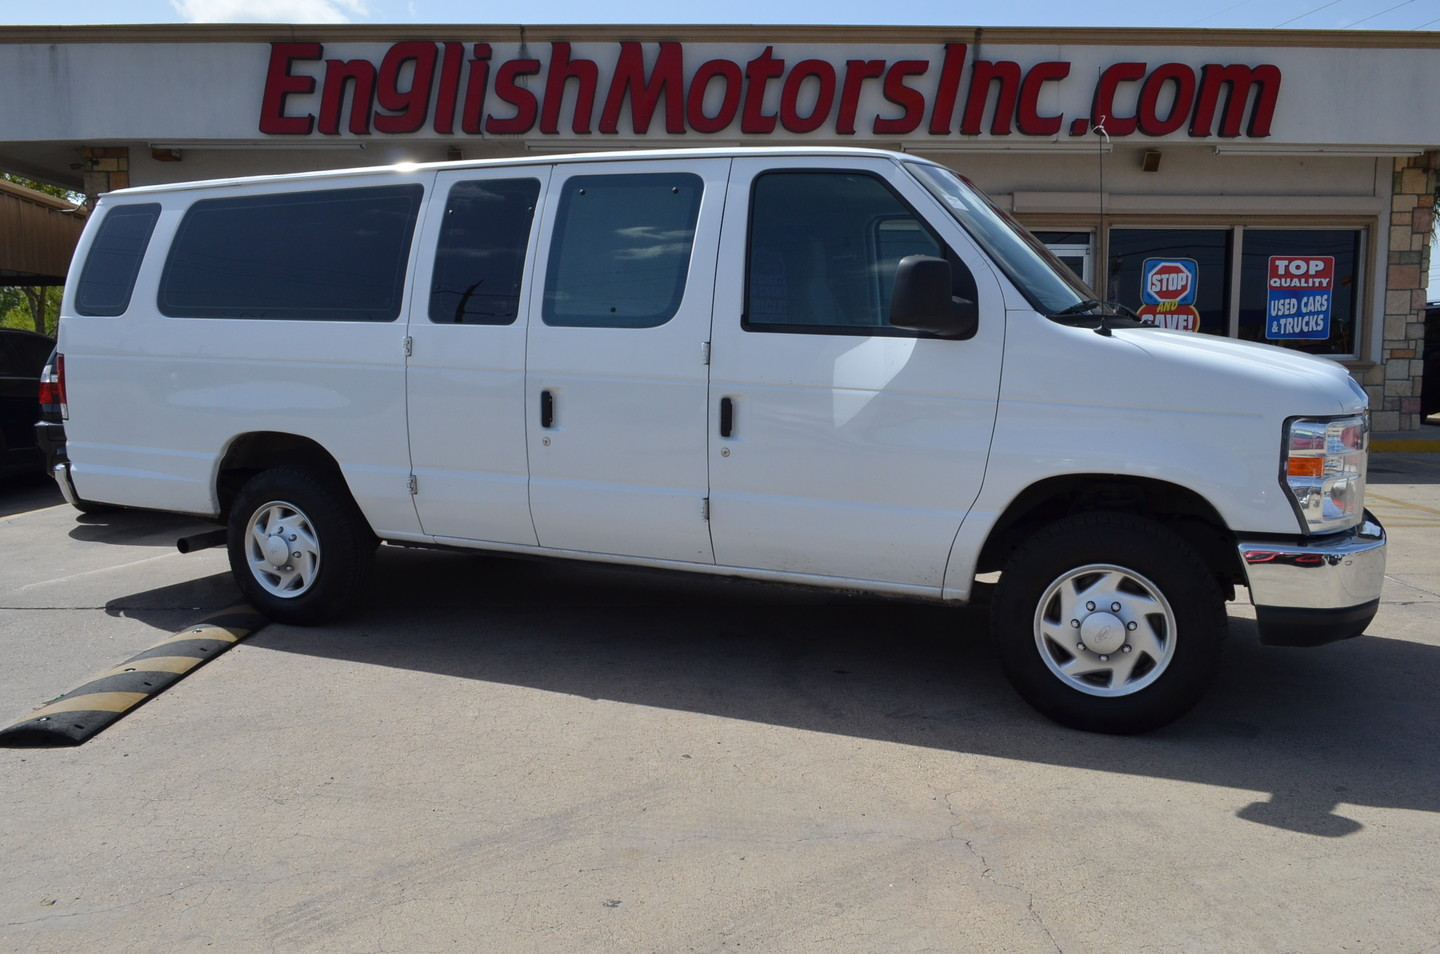 2012 ford e series wagon xlt brownsville tx english motors for English motors in brownsville